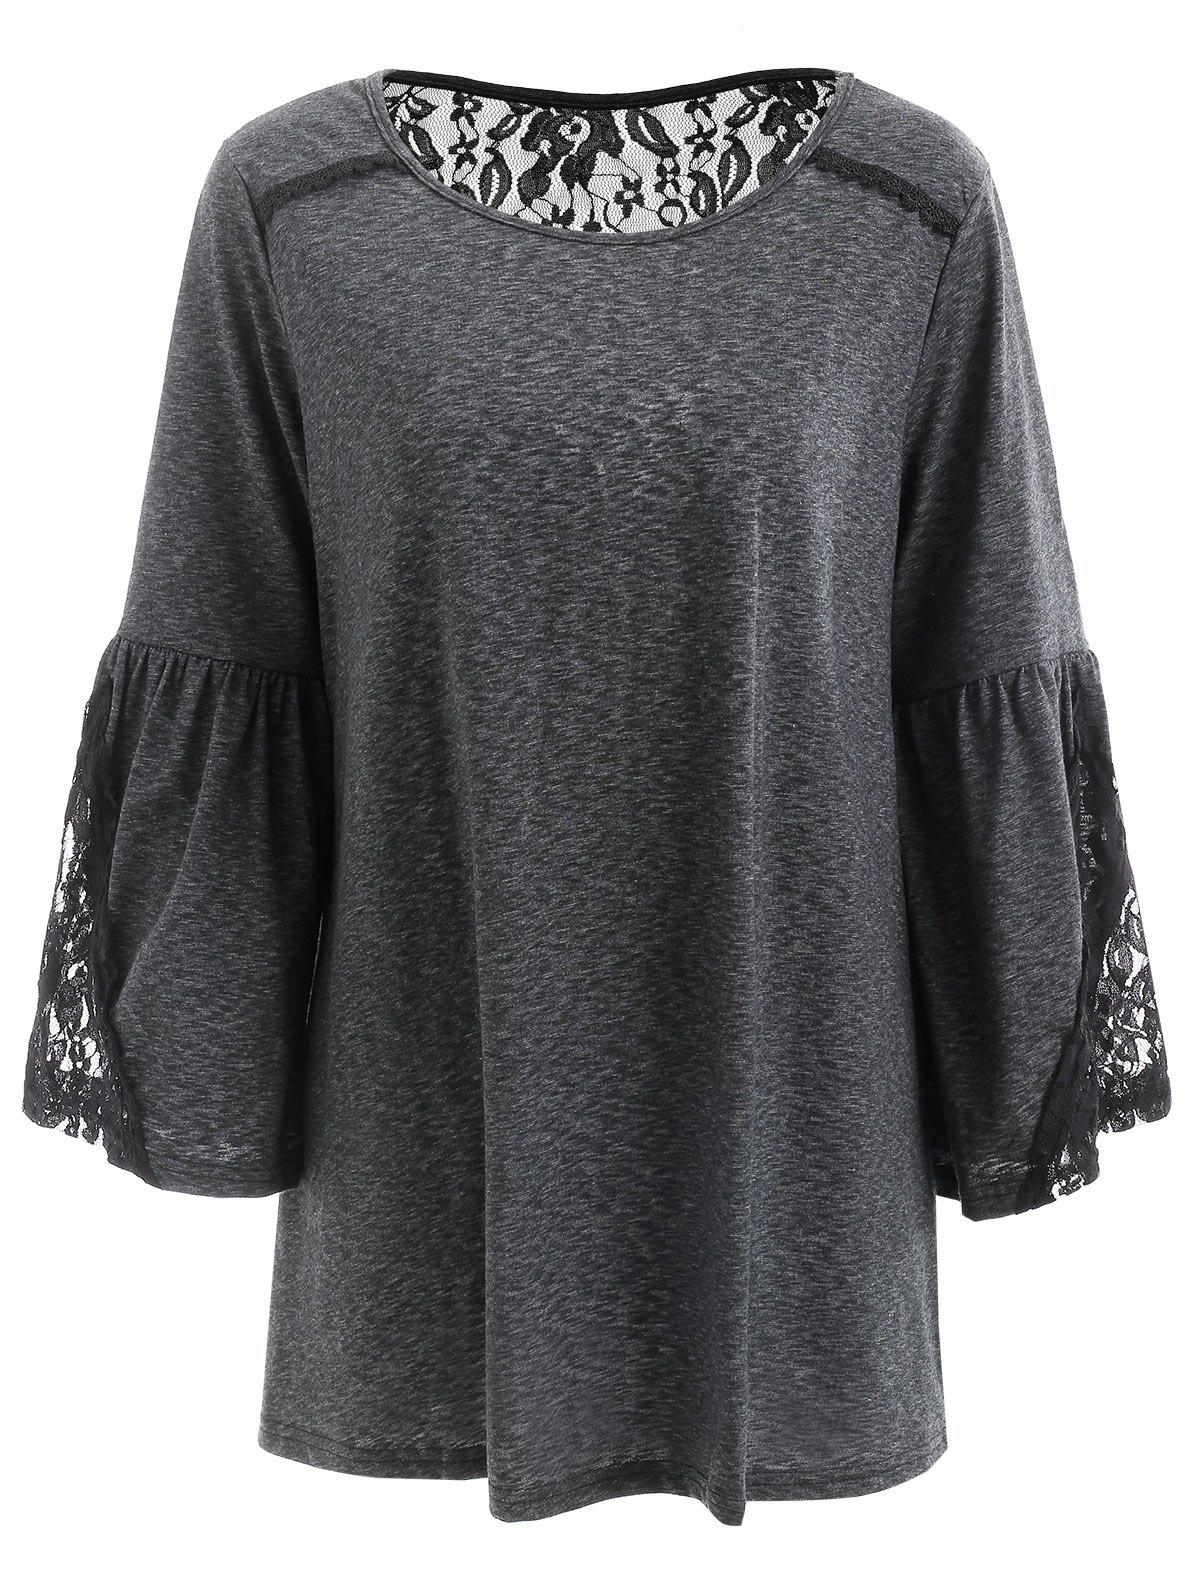 Hot Flare Sleeve Lace Insert T Shirt